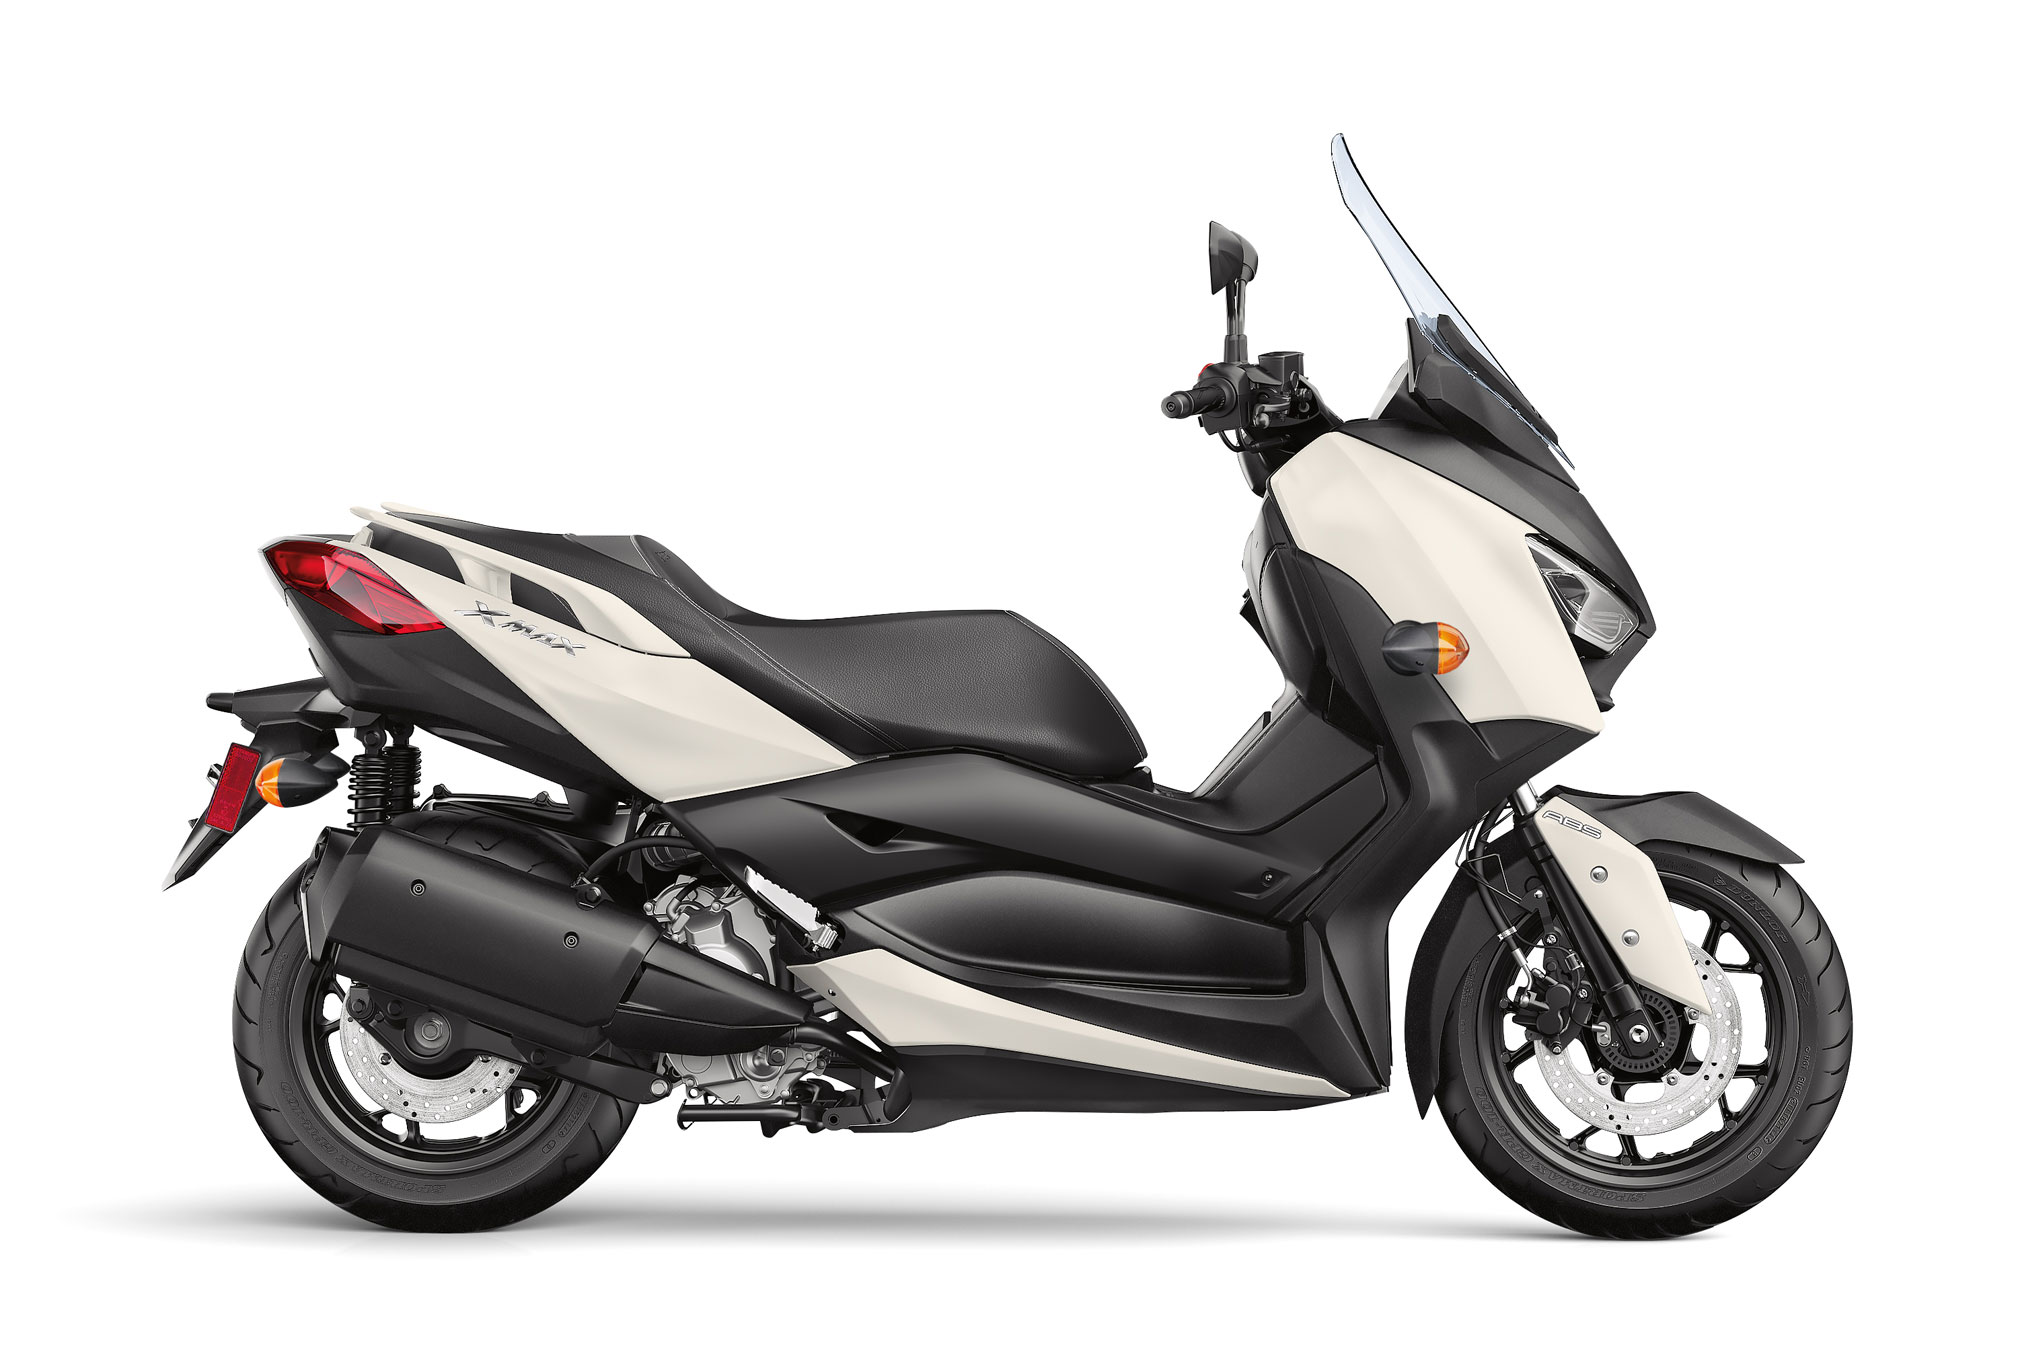 2018 yamaha xmax review total motorcycle. Black Bedroom Furniture Sets. Home Design Ideas